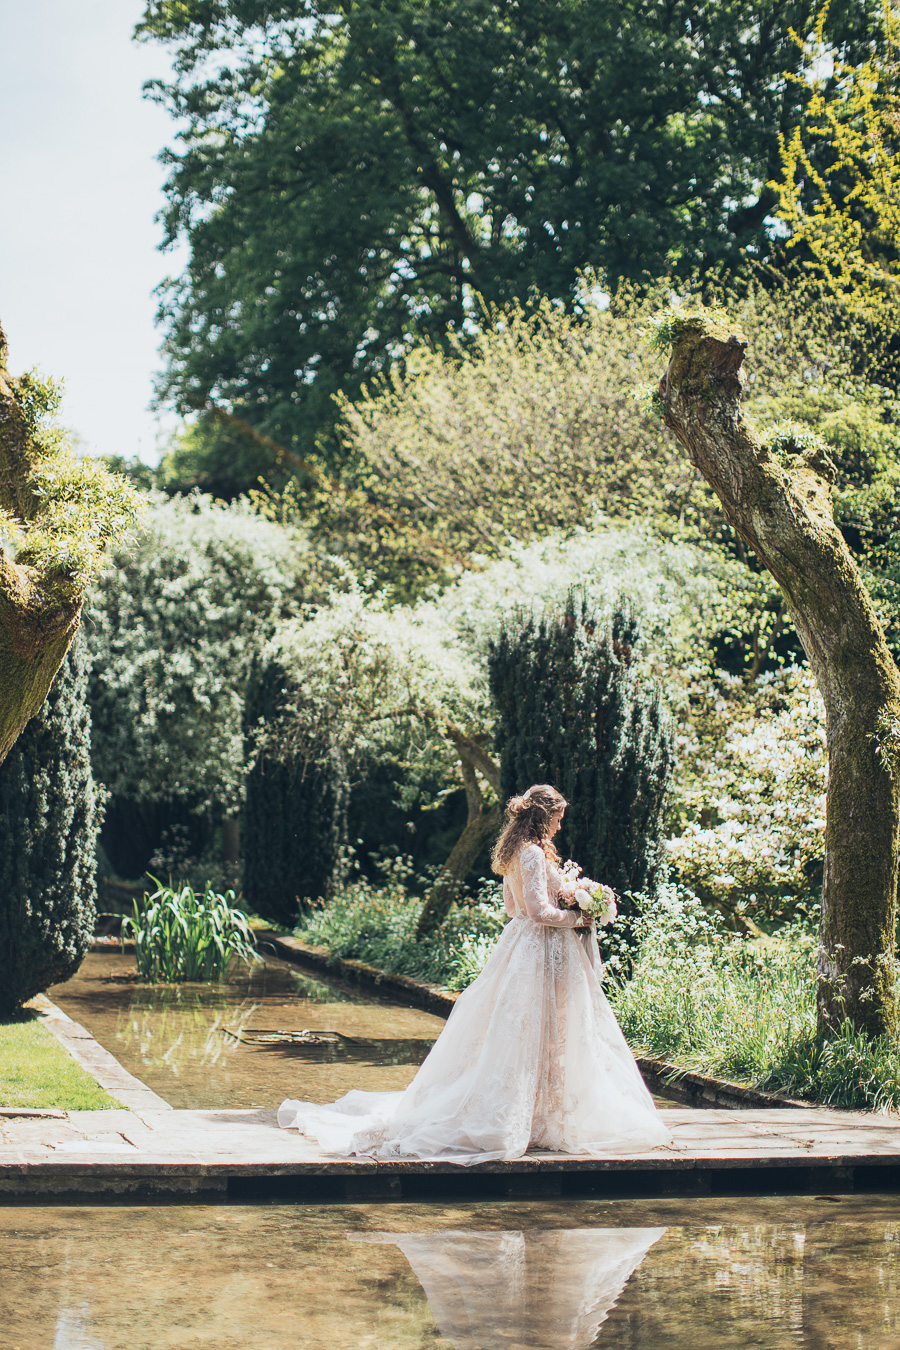 Plan an intimate Cotswolds wedding for two